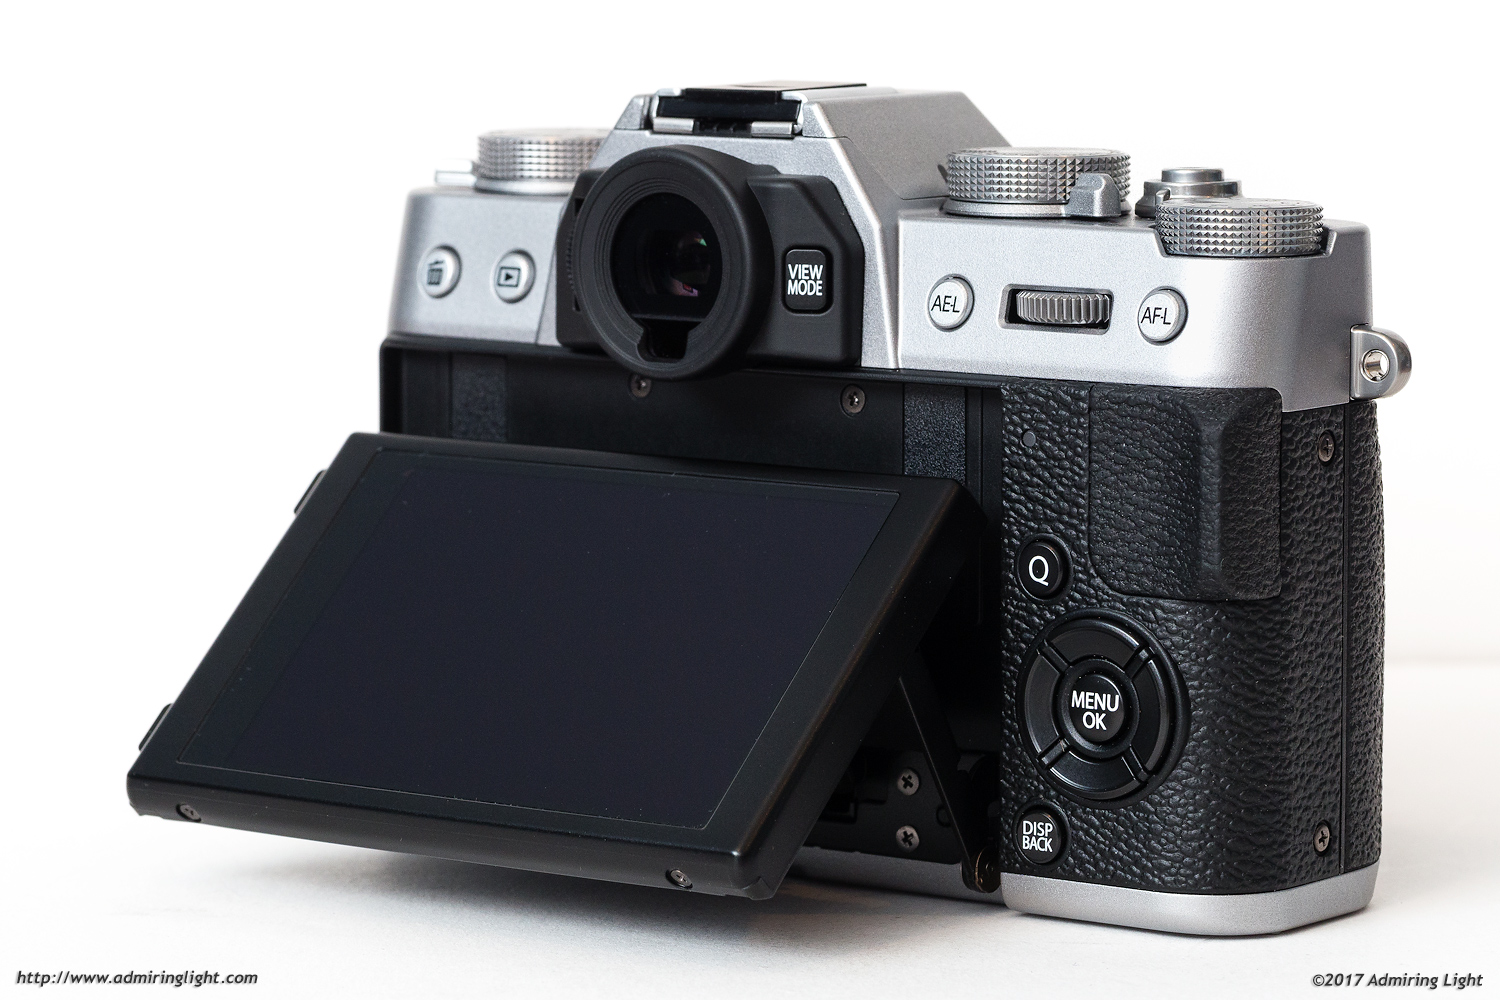 The rear touch screen of the X-T20